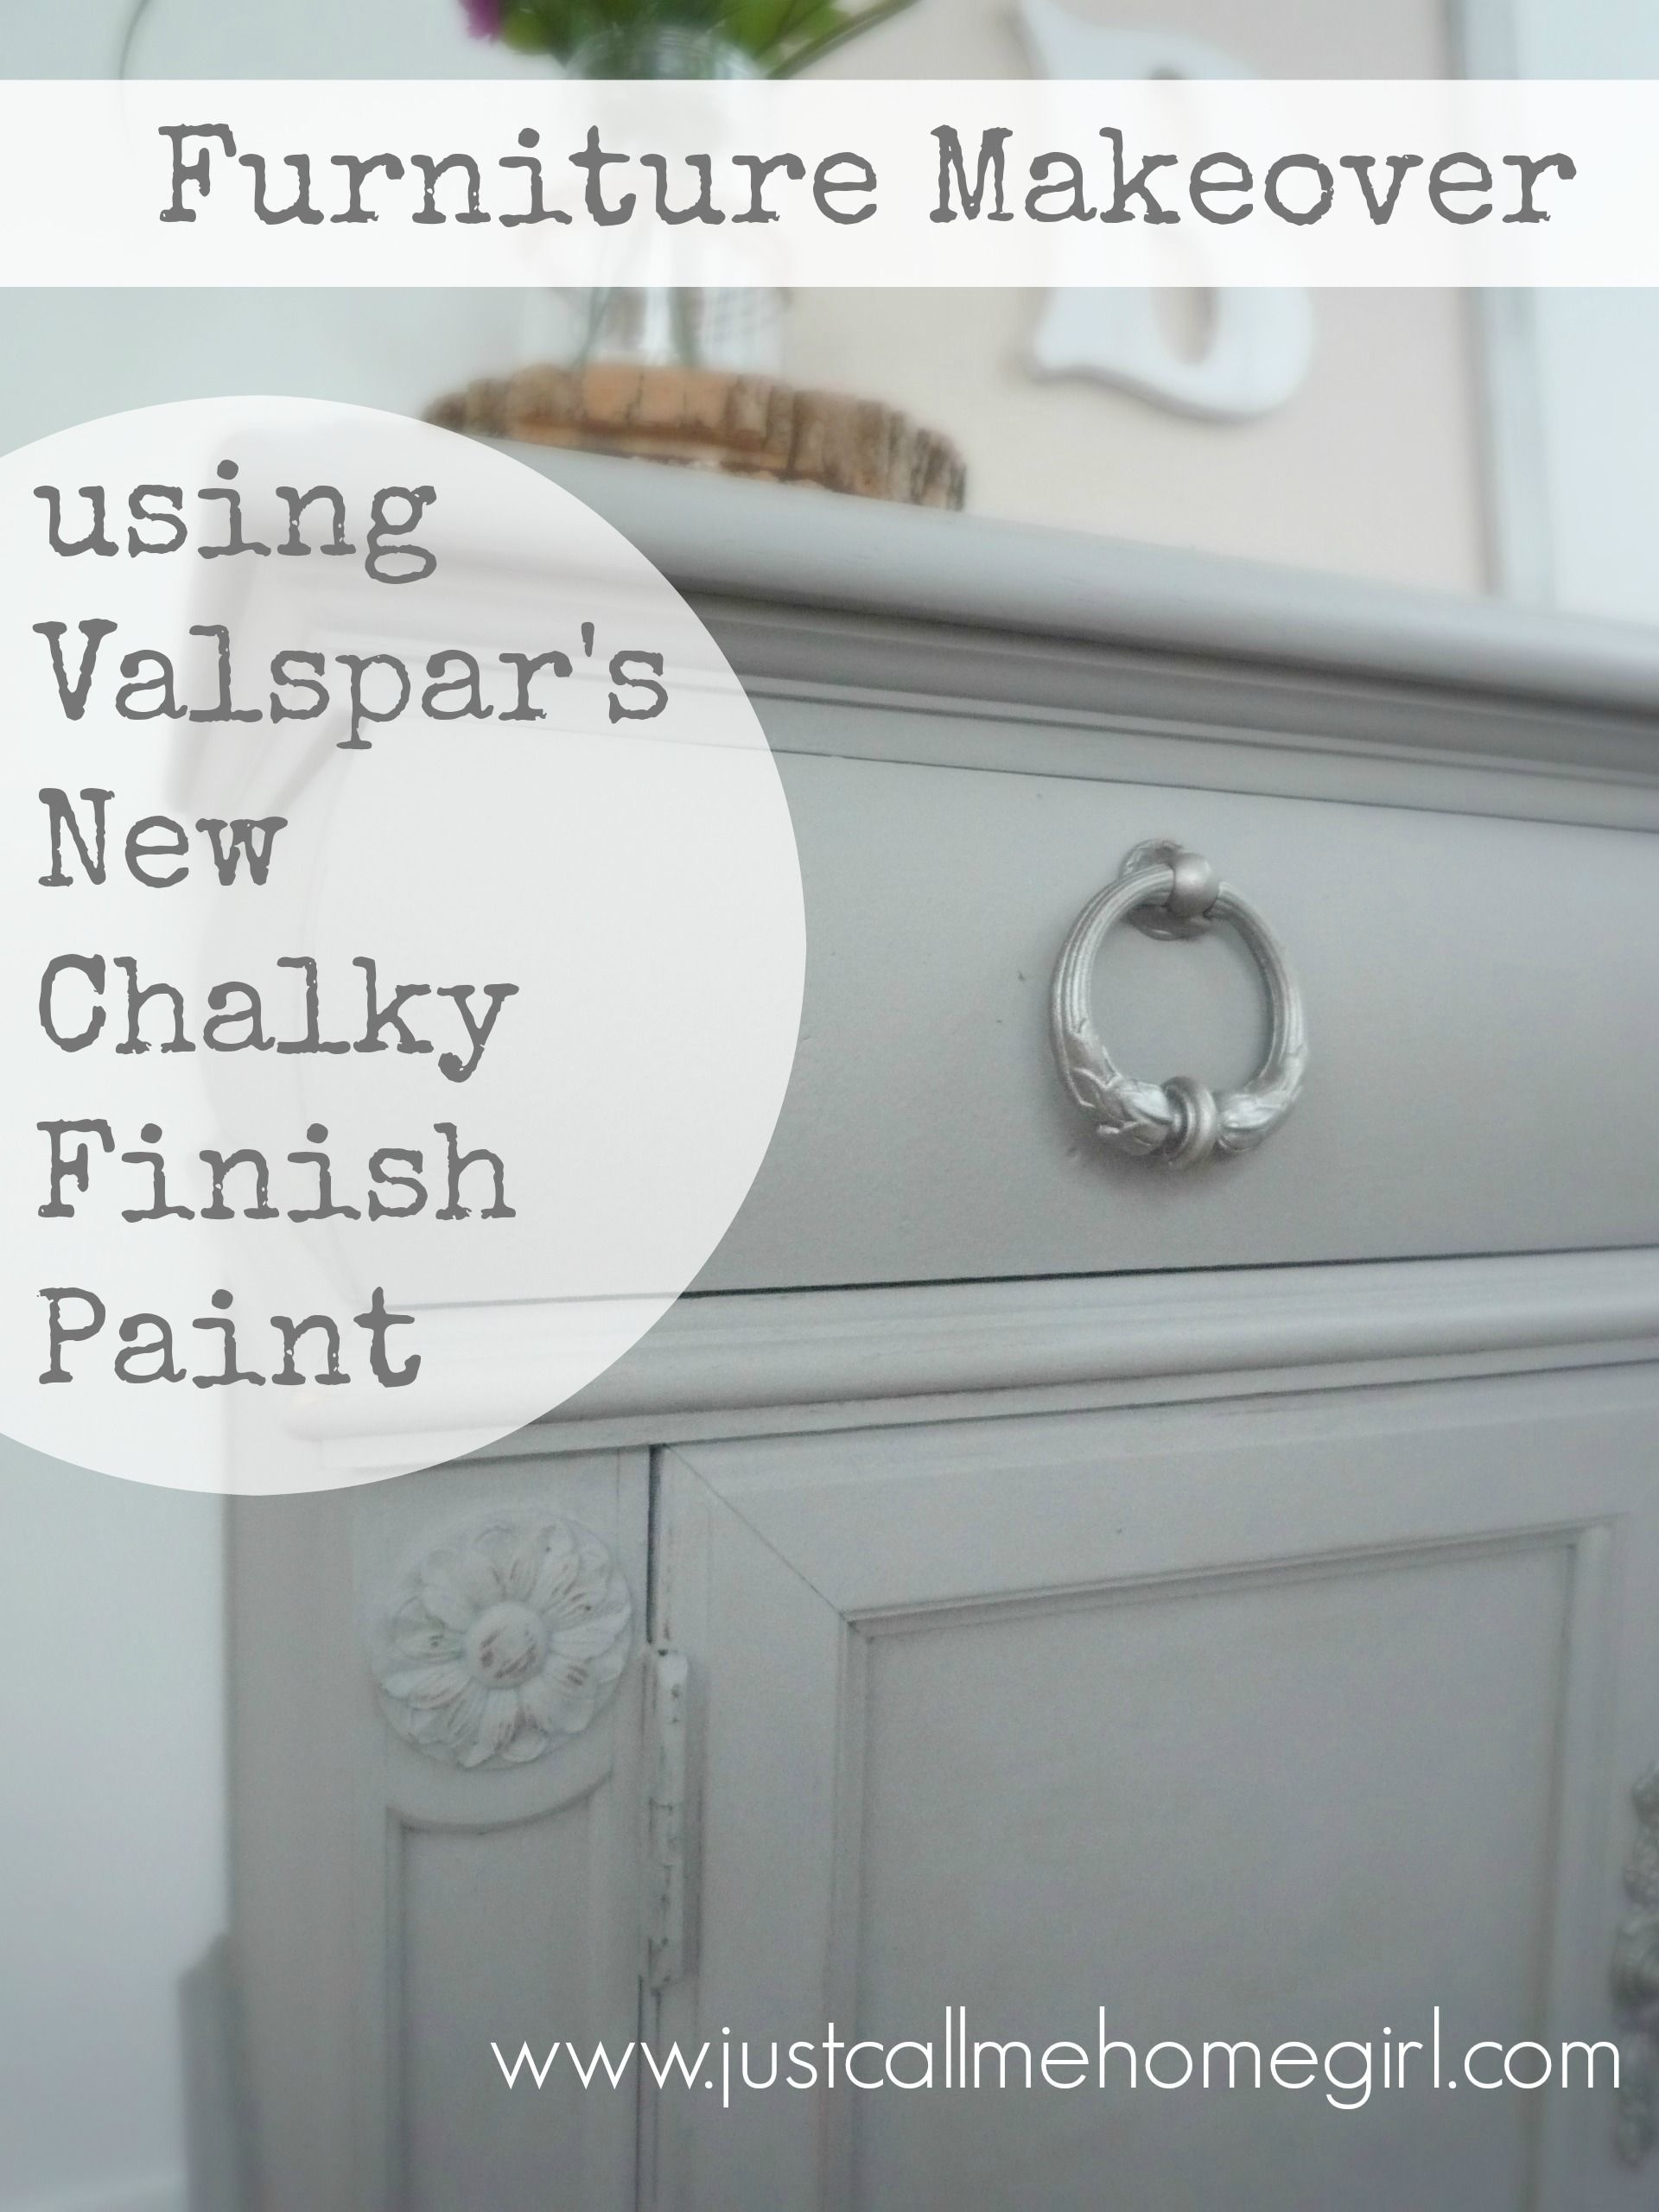 Valspar S New Chalky Finish Paint Makeover Using Woolen Stockings